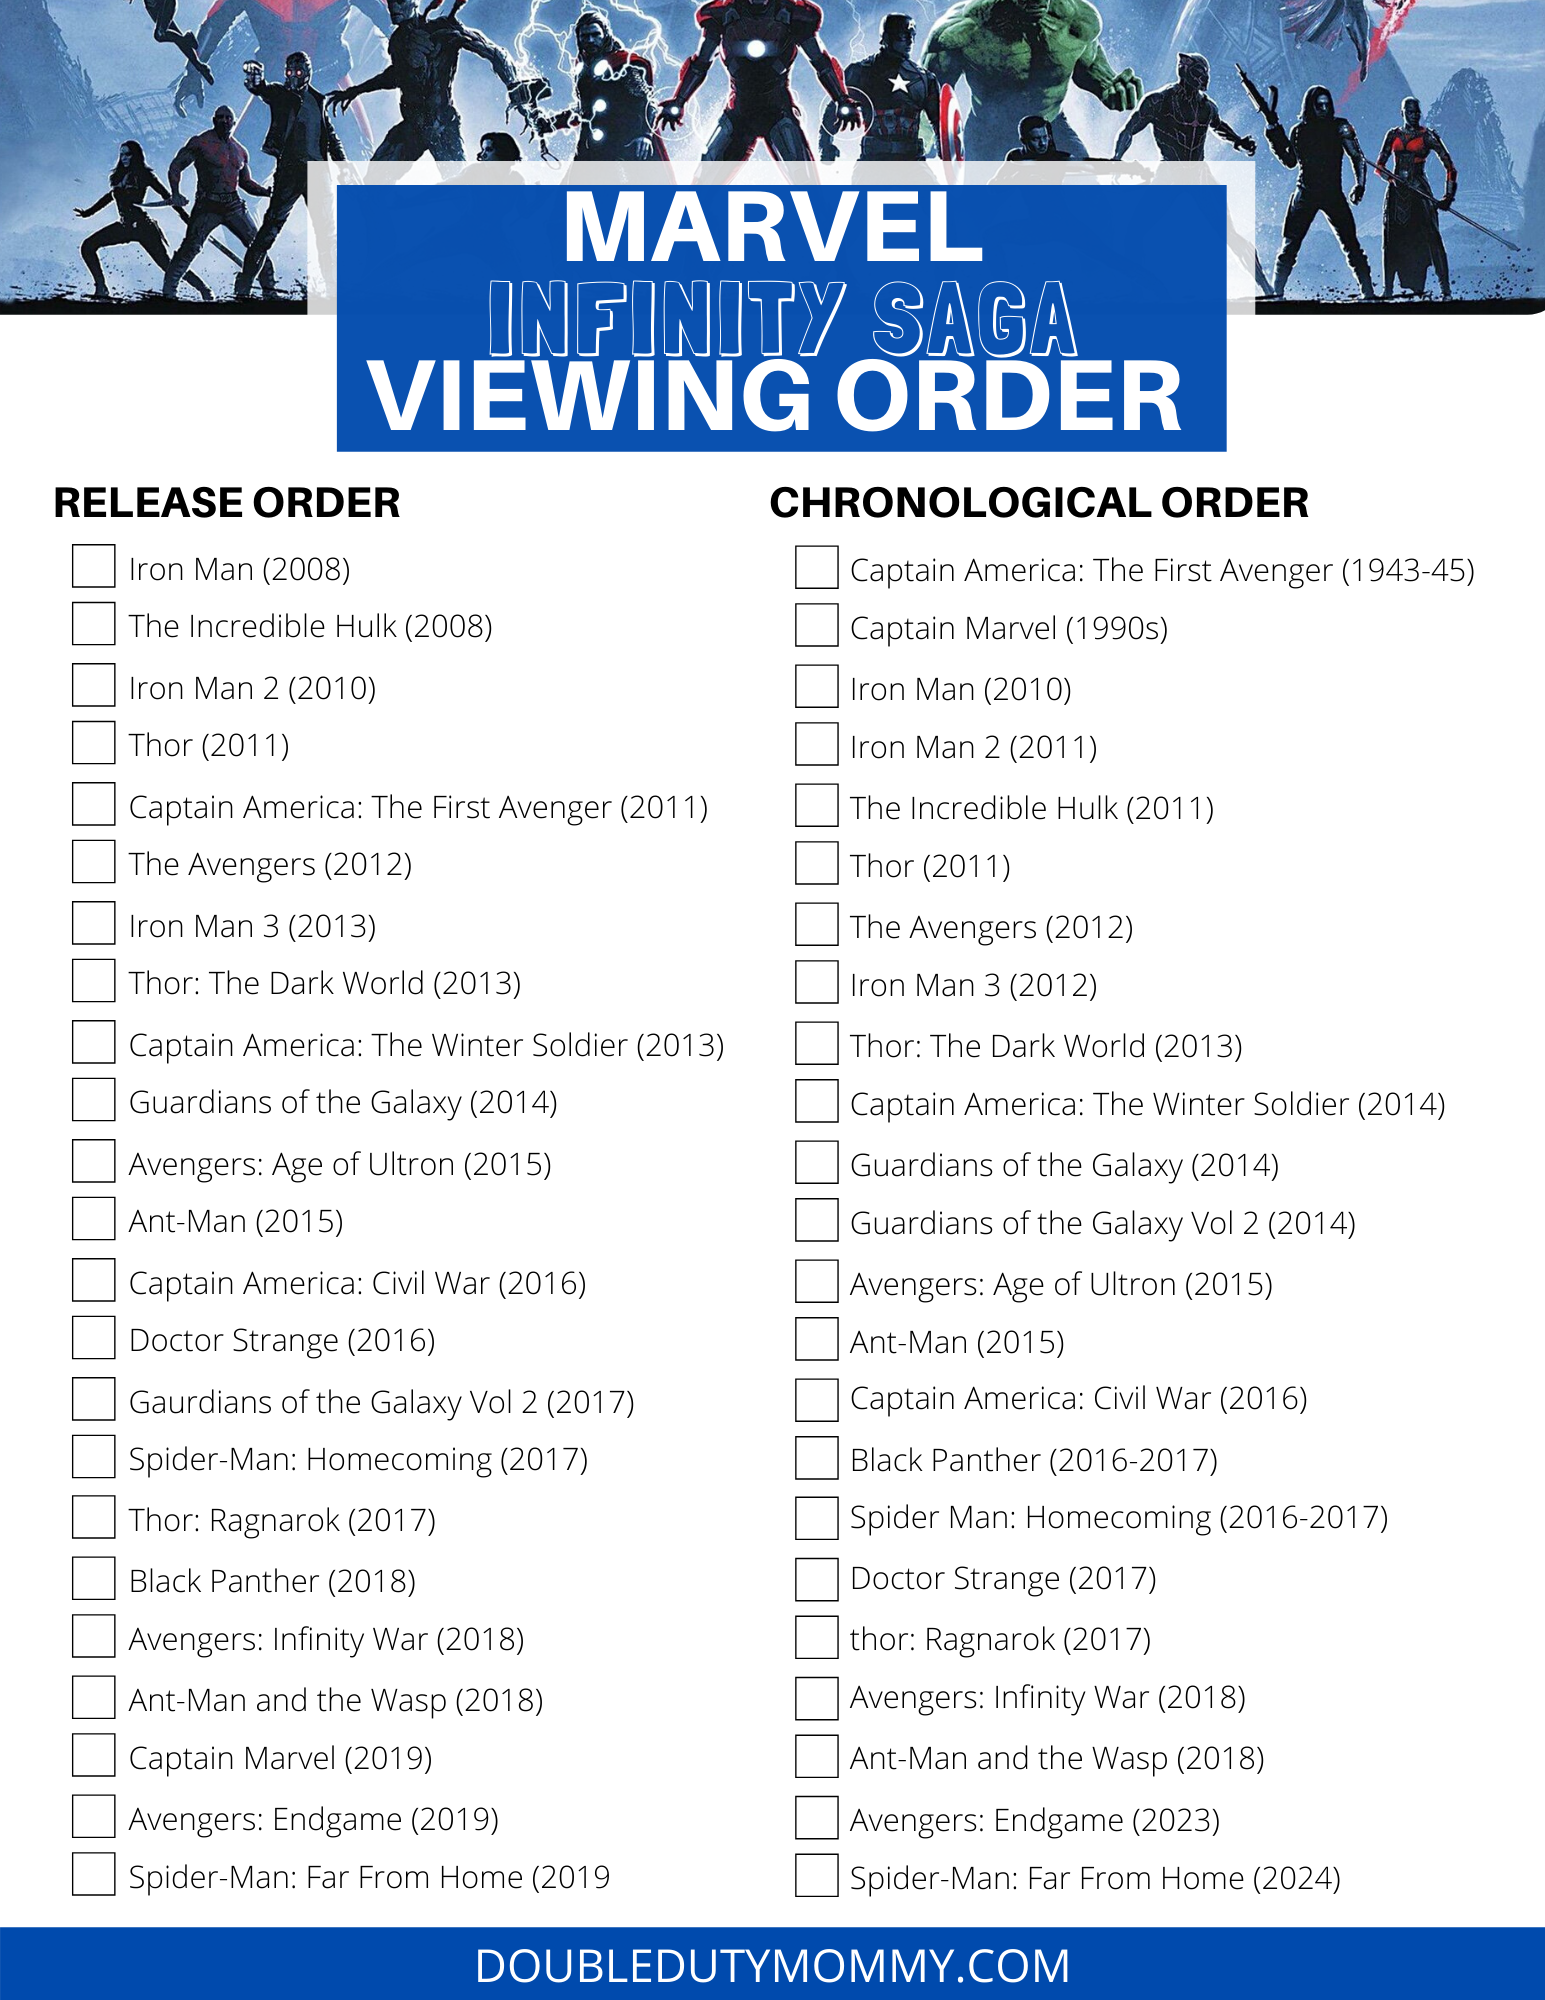 Catch up on all your favorite Marvel movies while you're stuck at home. Be sure to check out this list of Marvel movies listed in both release order and chronological order for the best experience. #marvel #spiderman #farfromhome #avengers